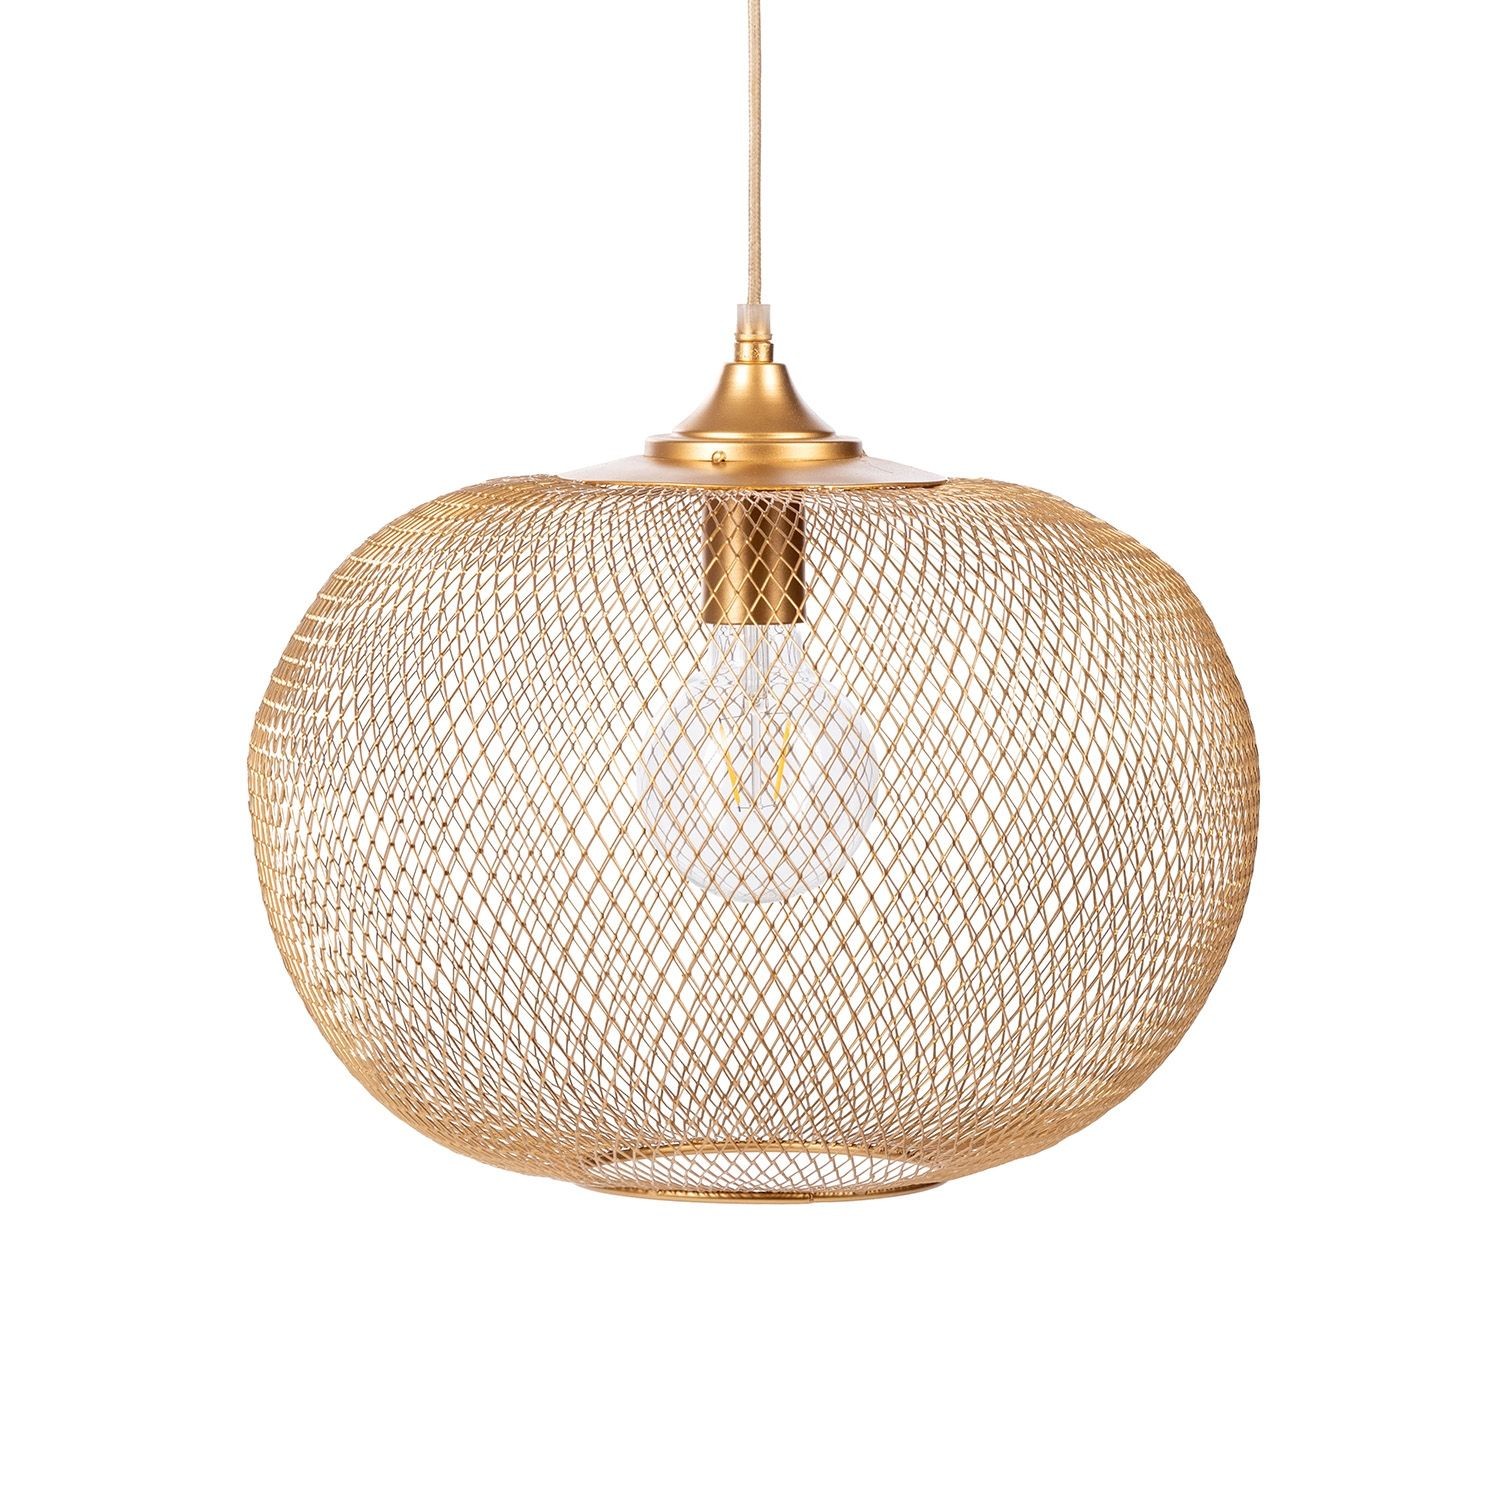 Indy hanglamp Bodilson goud